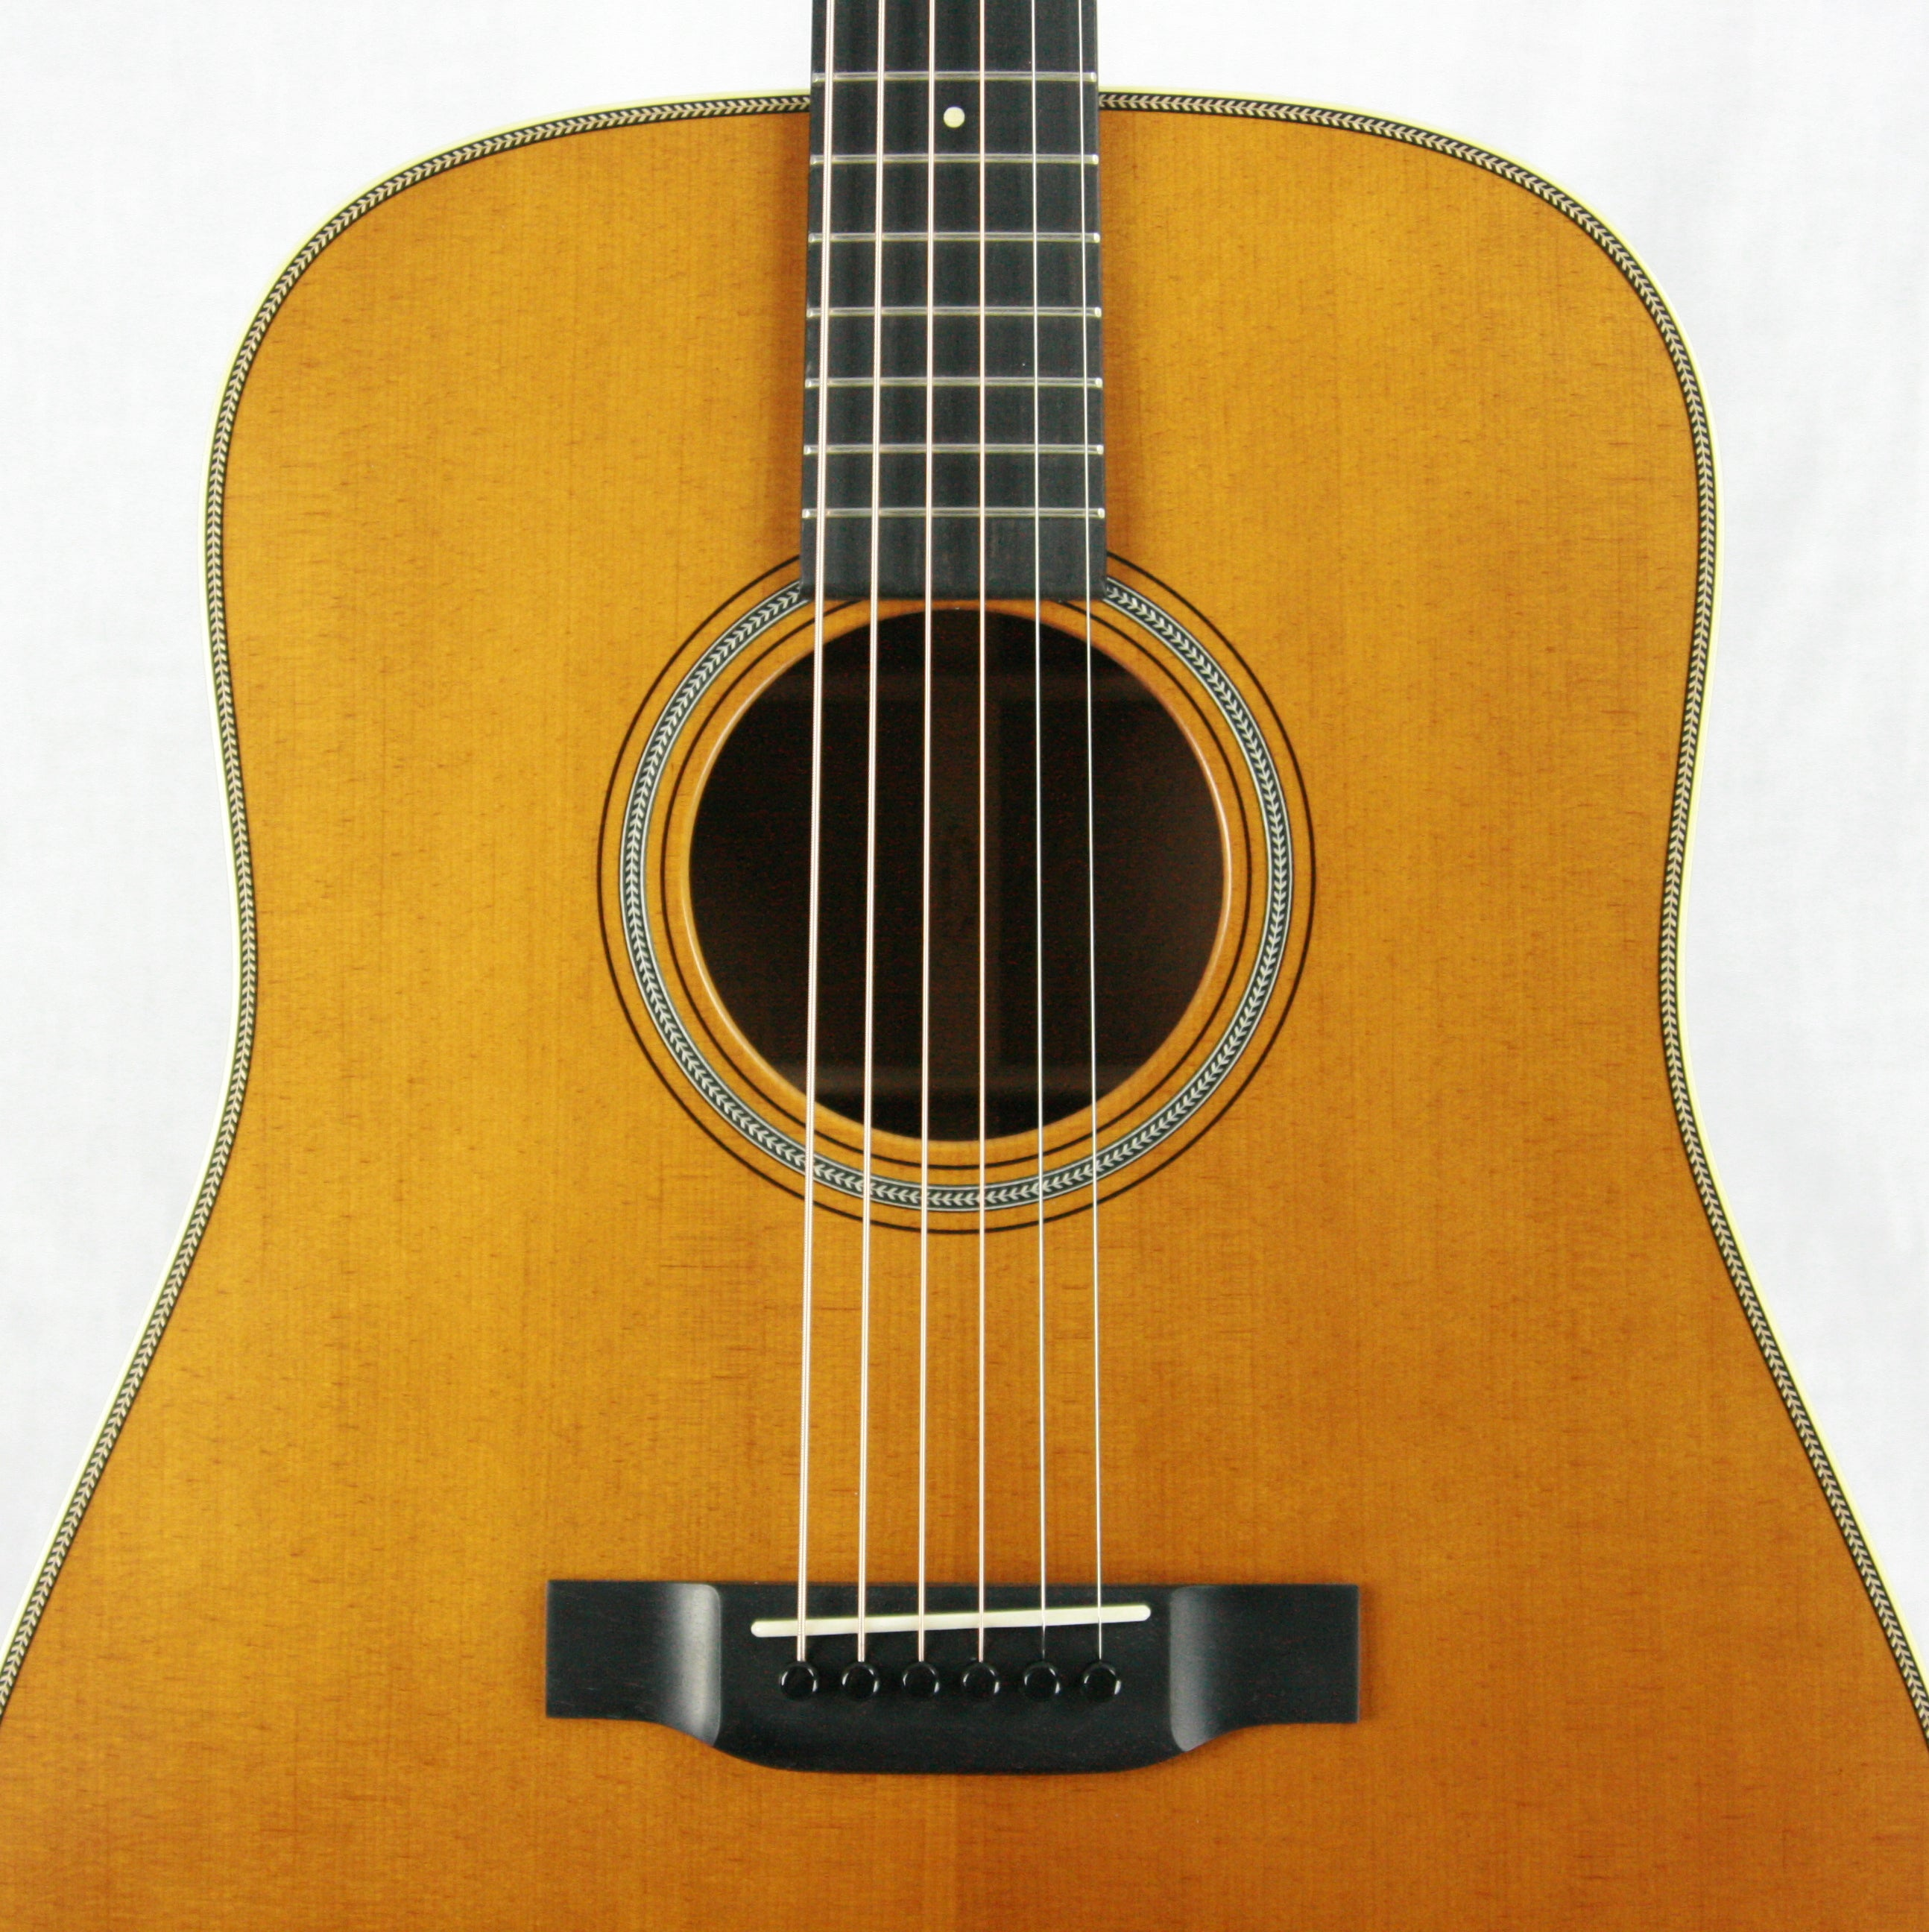 2016 Martin Custom Shop D-18 DITSON Finish! Sitka Top & Figured Sipo Back/Sides!